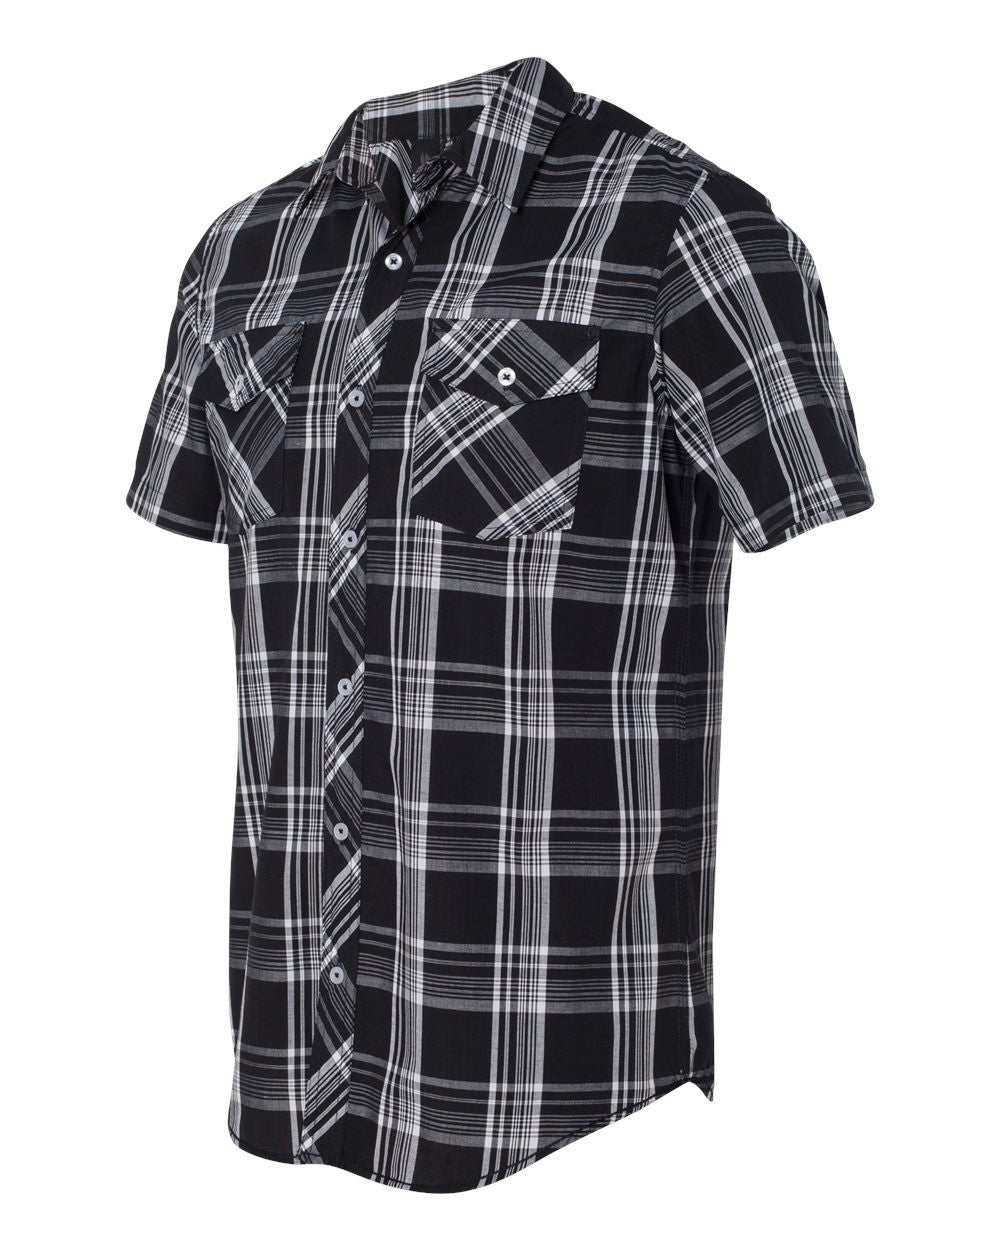 Burnside Dress Shirts with extended sizings